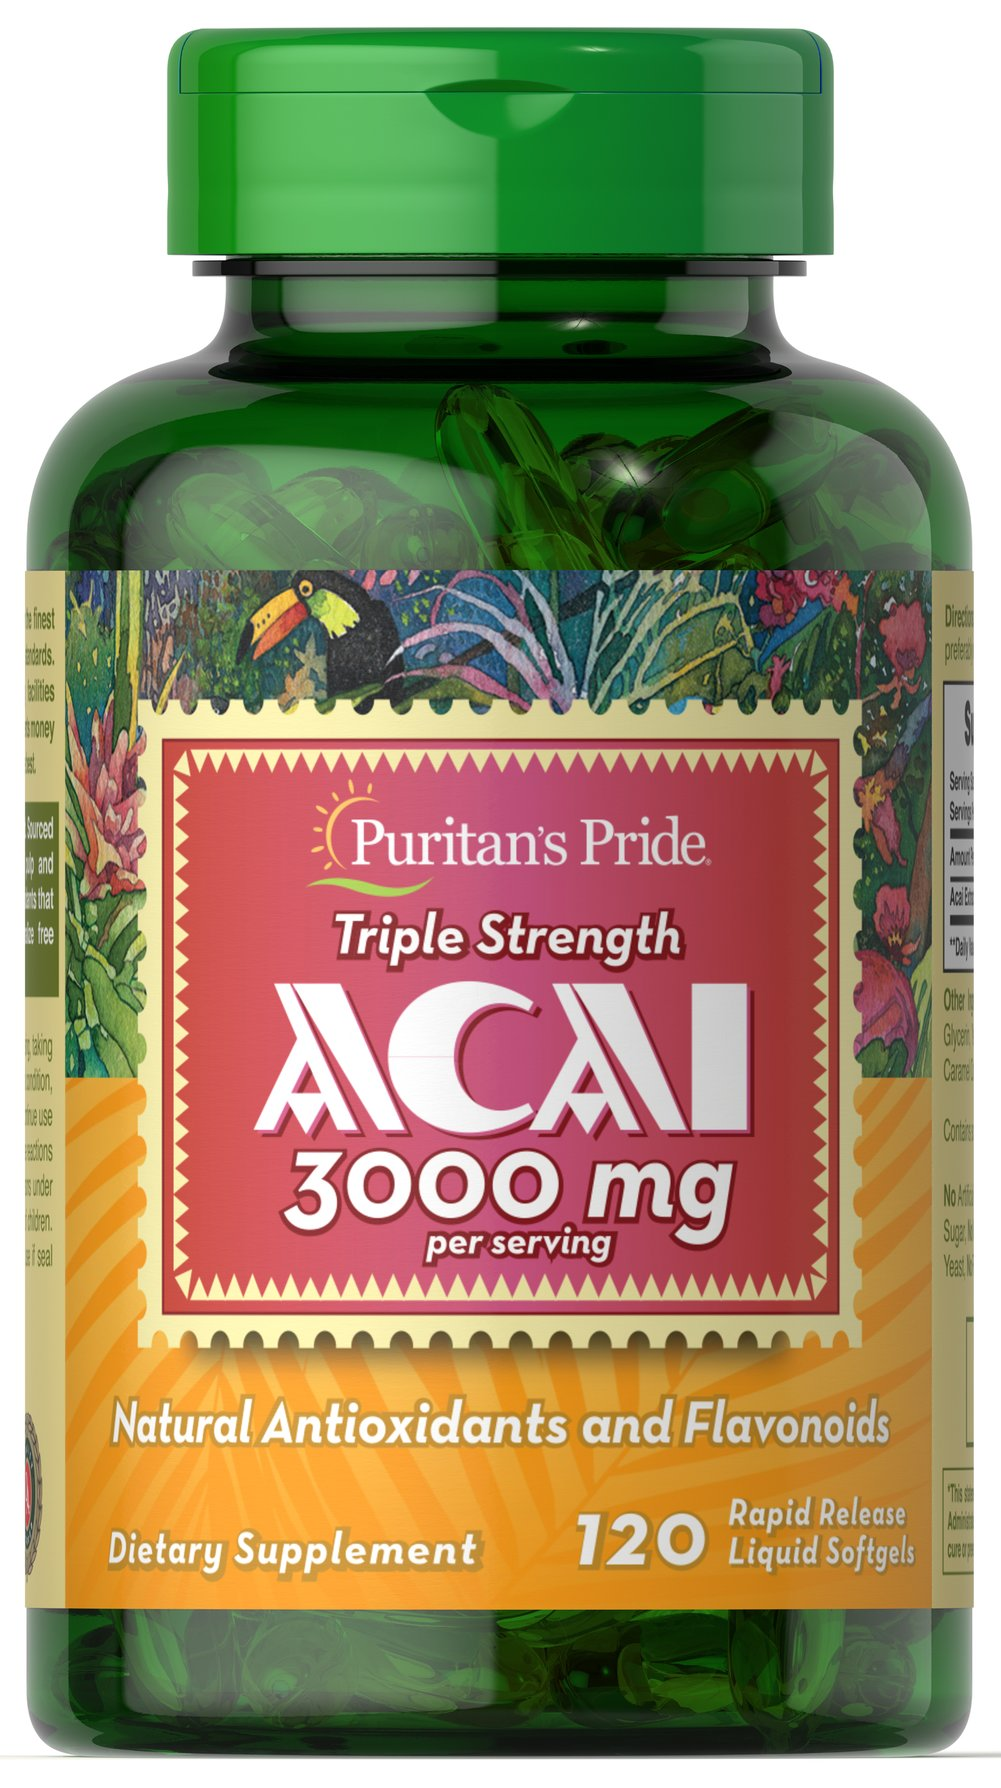 Triple Strength Acai 3000 mg <p>Unlock an exotic fountain of health and vitality with Acai!**</p><p>Contains natural flavonoids and antioxidants that help protect the body from cell damaging free radicals**</p><p>Antioxidants are an important line of defense against these rogue atoms and also help support and maintain immune system health**</p><p>3,000 mg Acai per serving (two softgels).</p> 120 Softgels 3000 mg $25.99